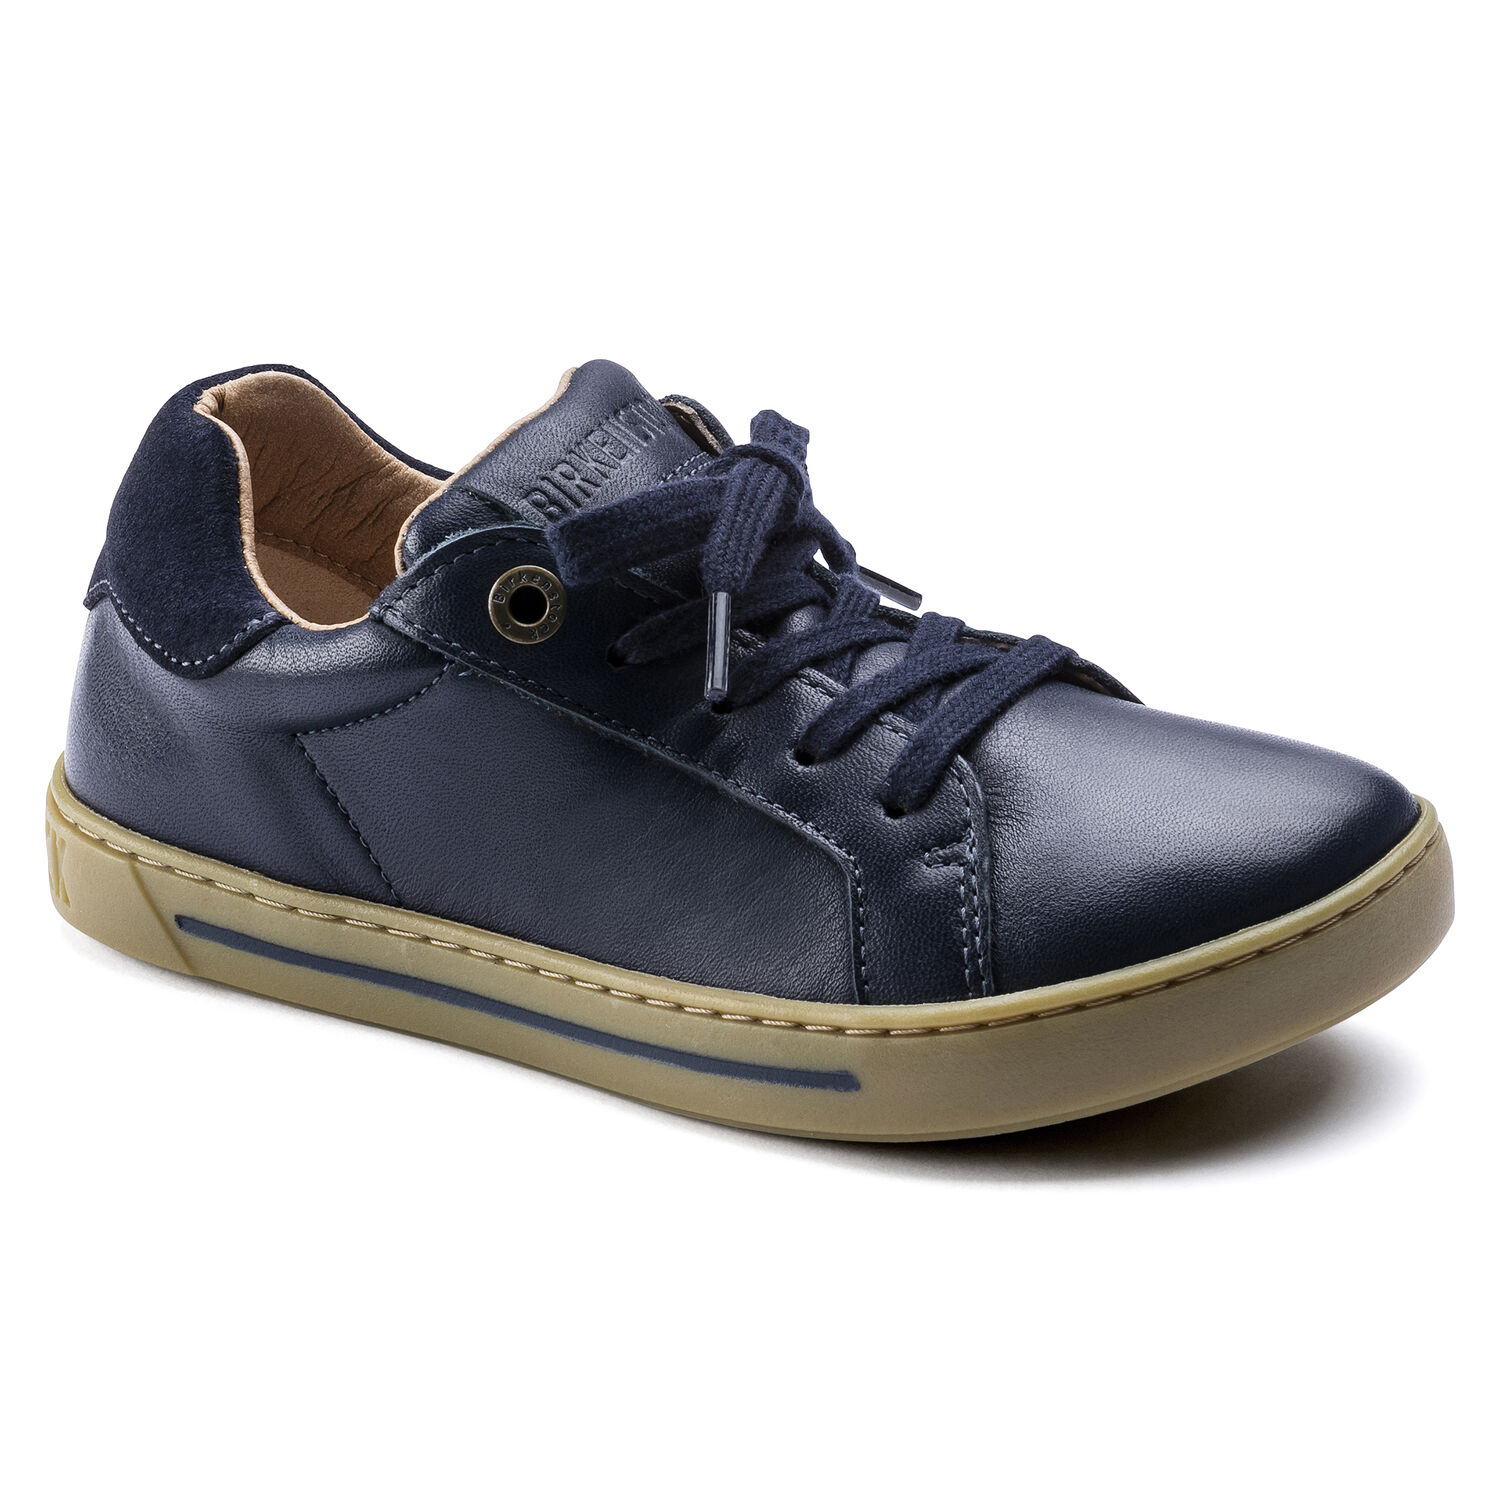 Porto Kids Natural Leather